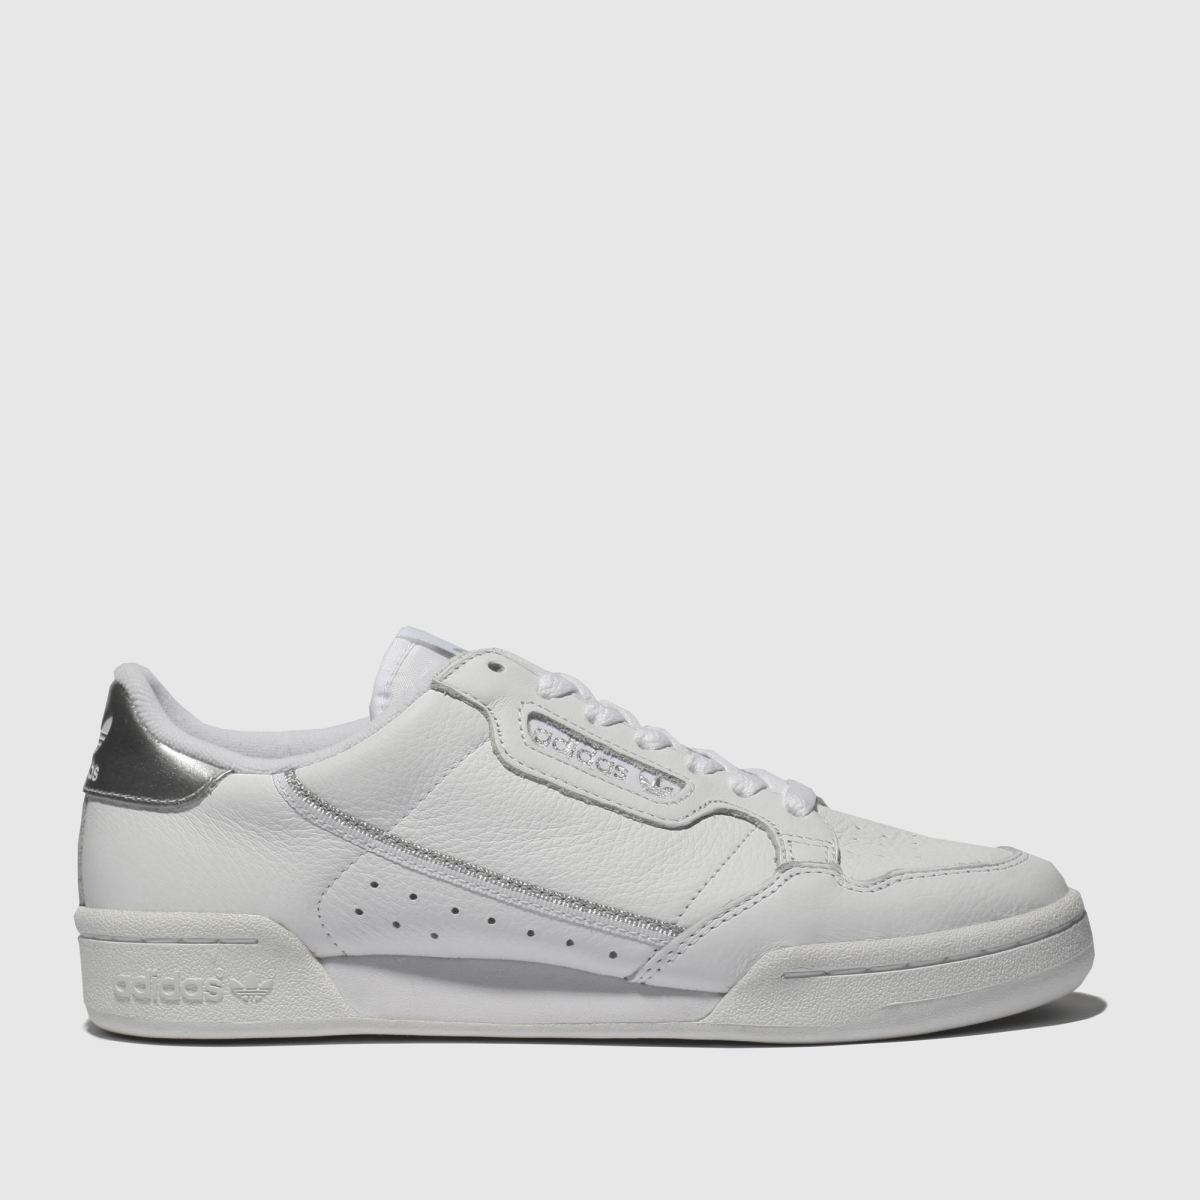 Adidas White & Silver Continental 80 Trainers